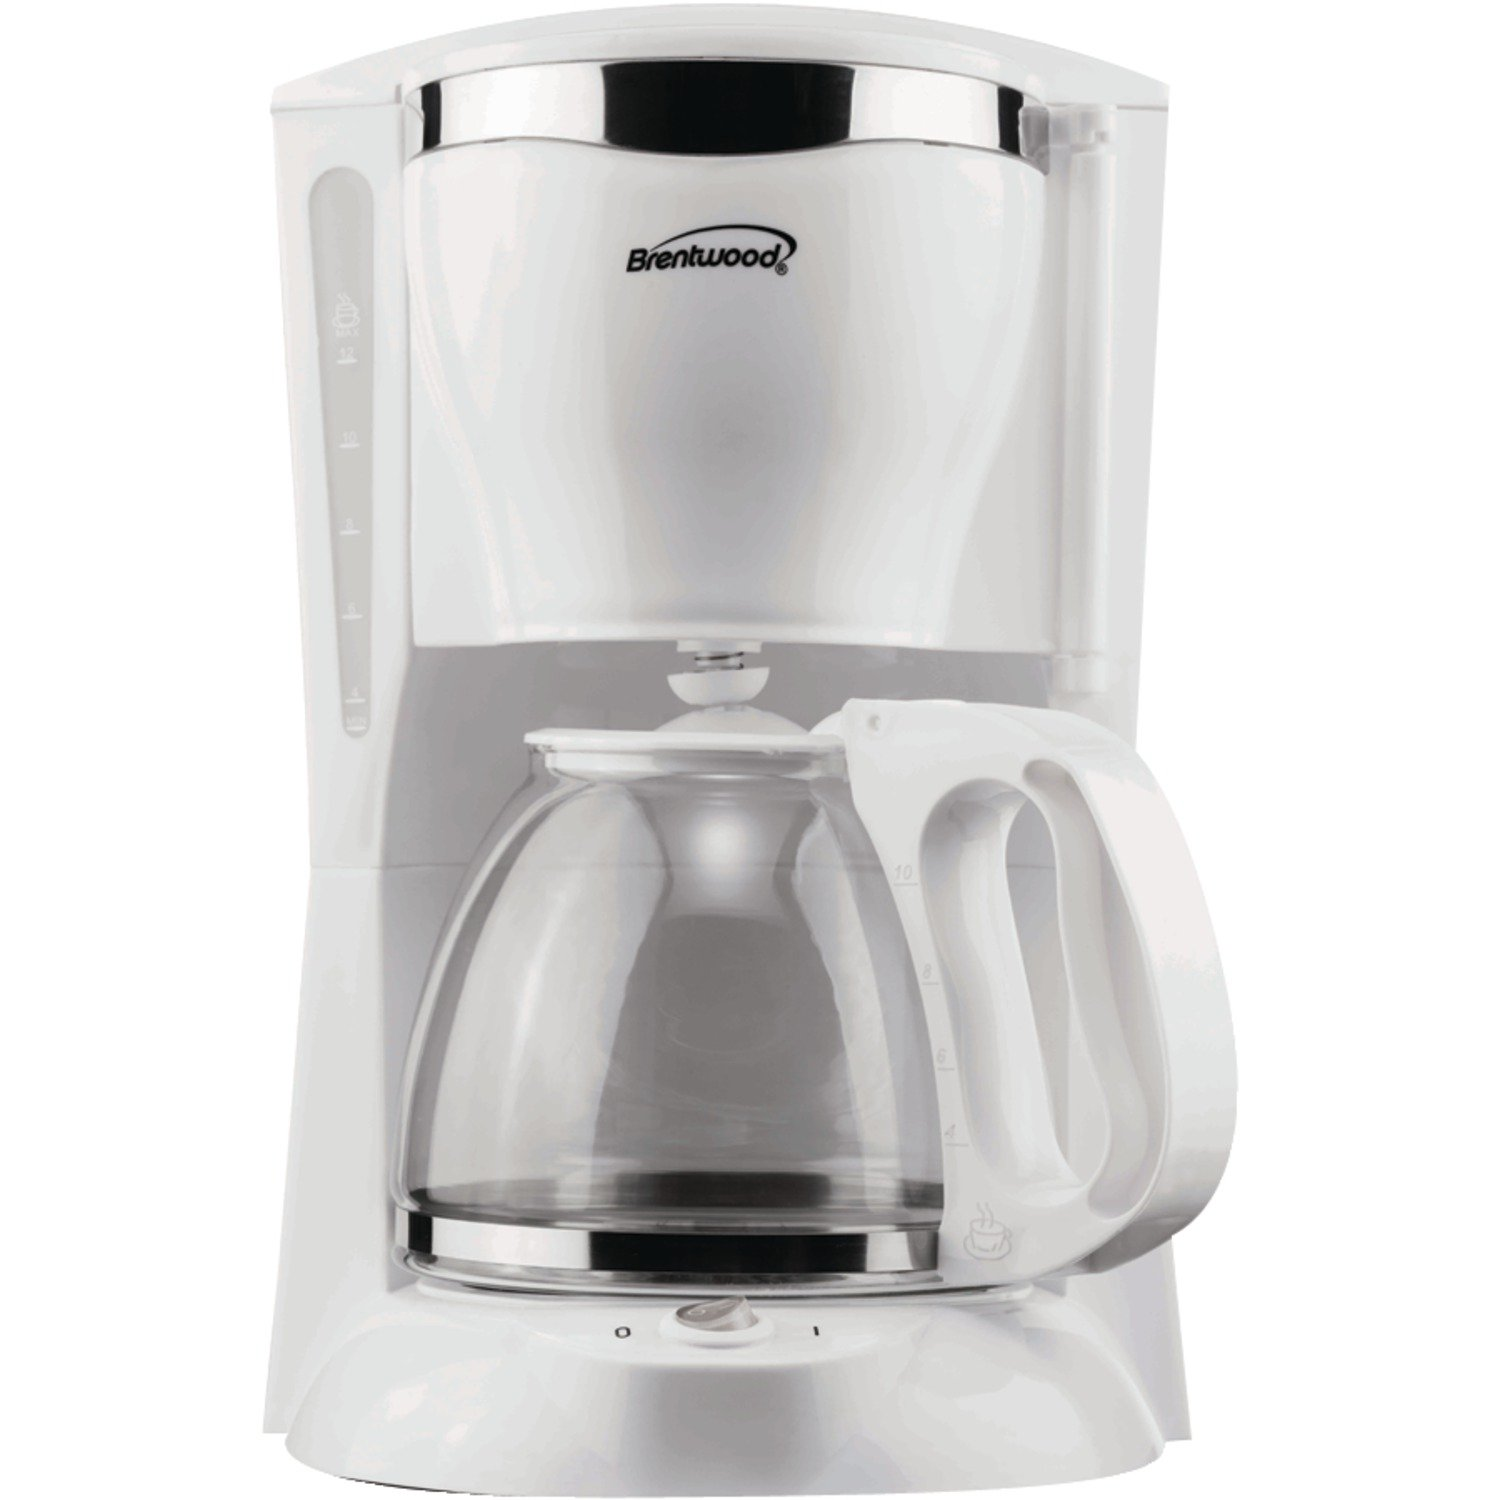 Brentwood Ts 216 12 Cup Coffee Maker White Ebay